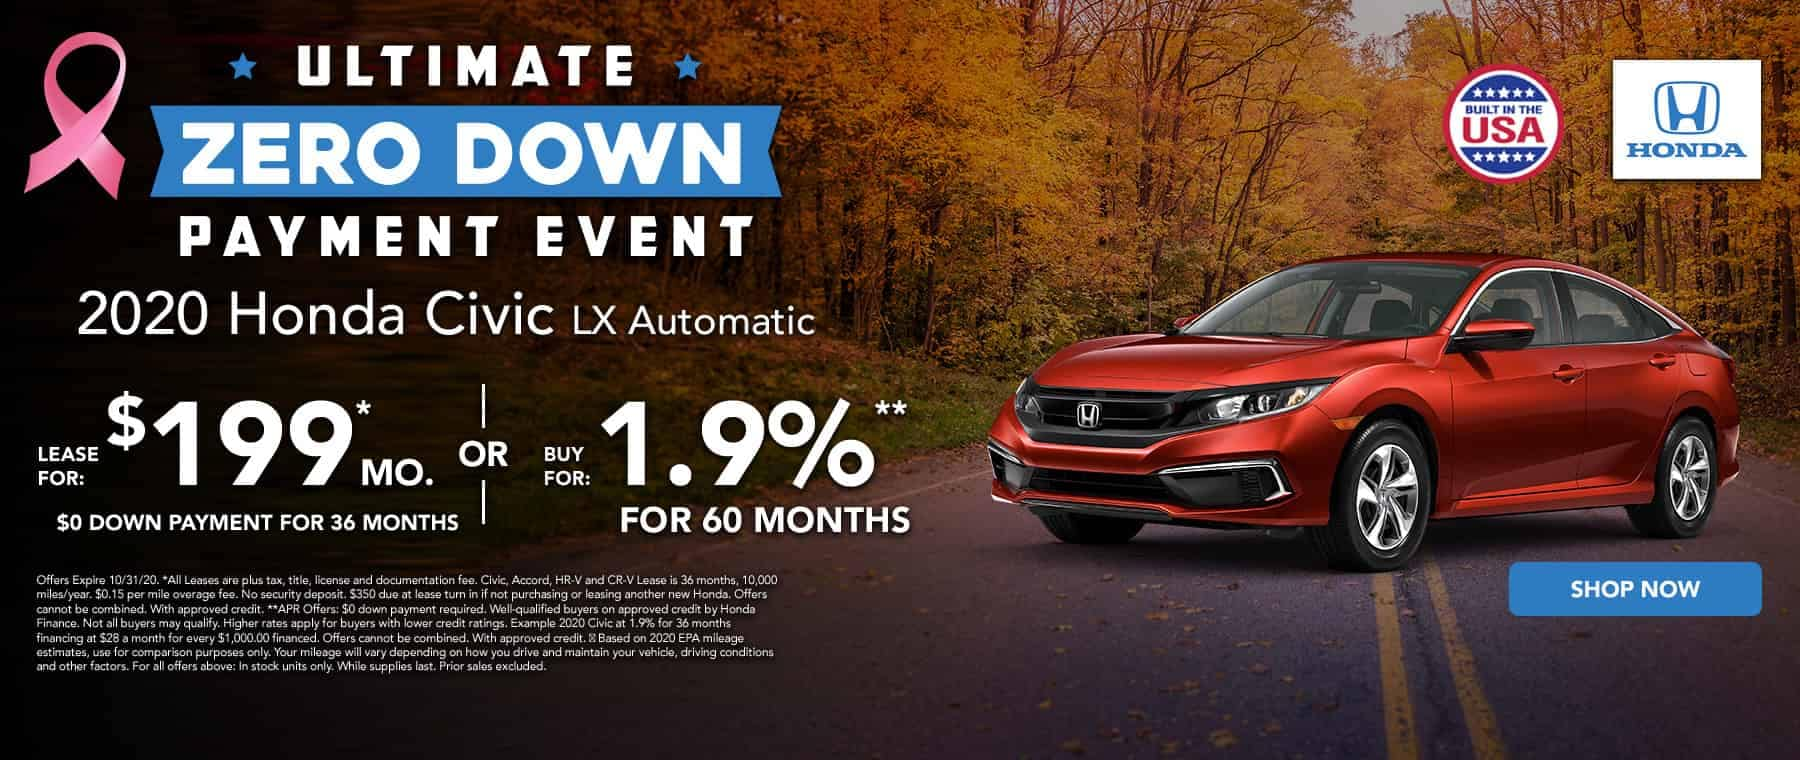 Lease a new Civic for $199 per month